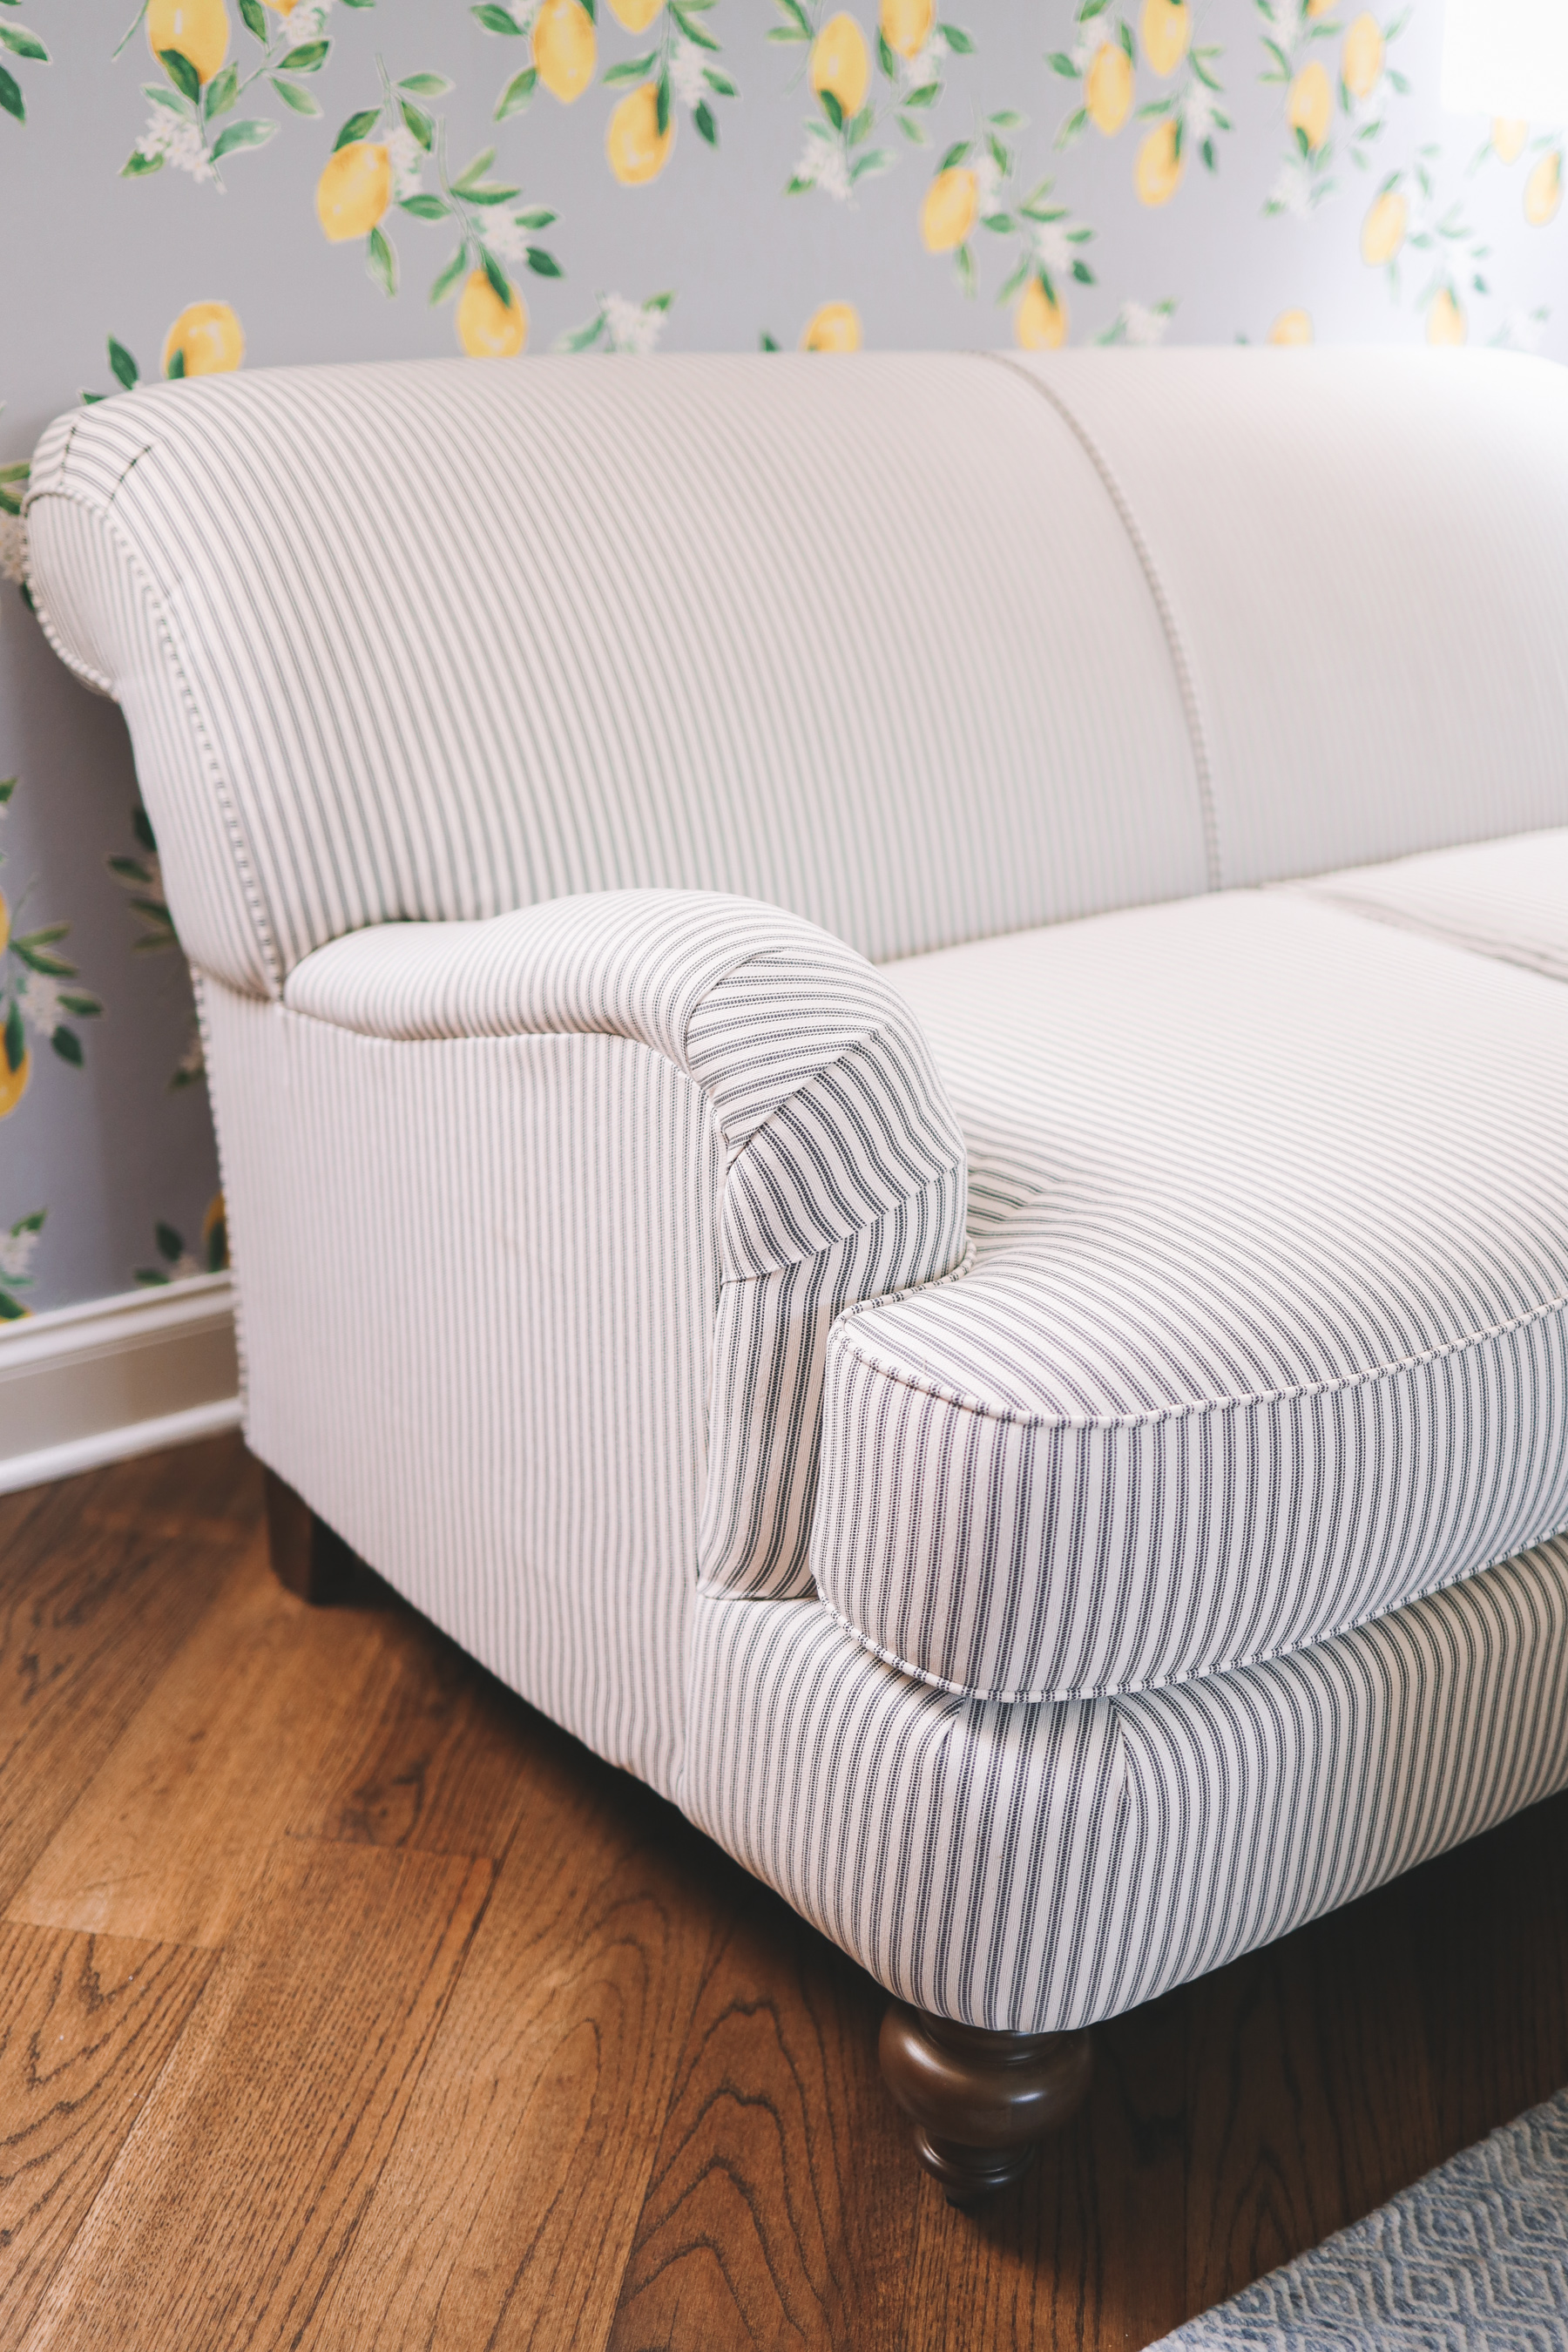 lemon wallpaper contrasting pinstripes on the loveseat